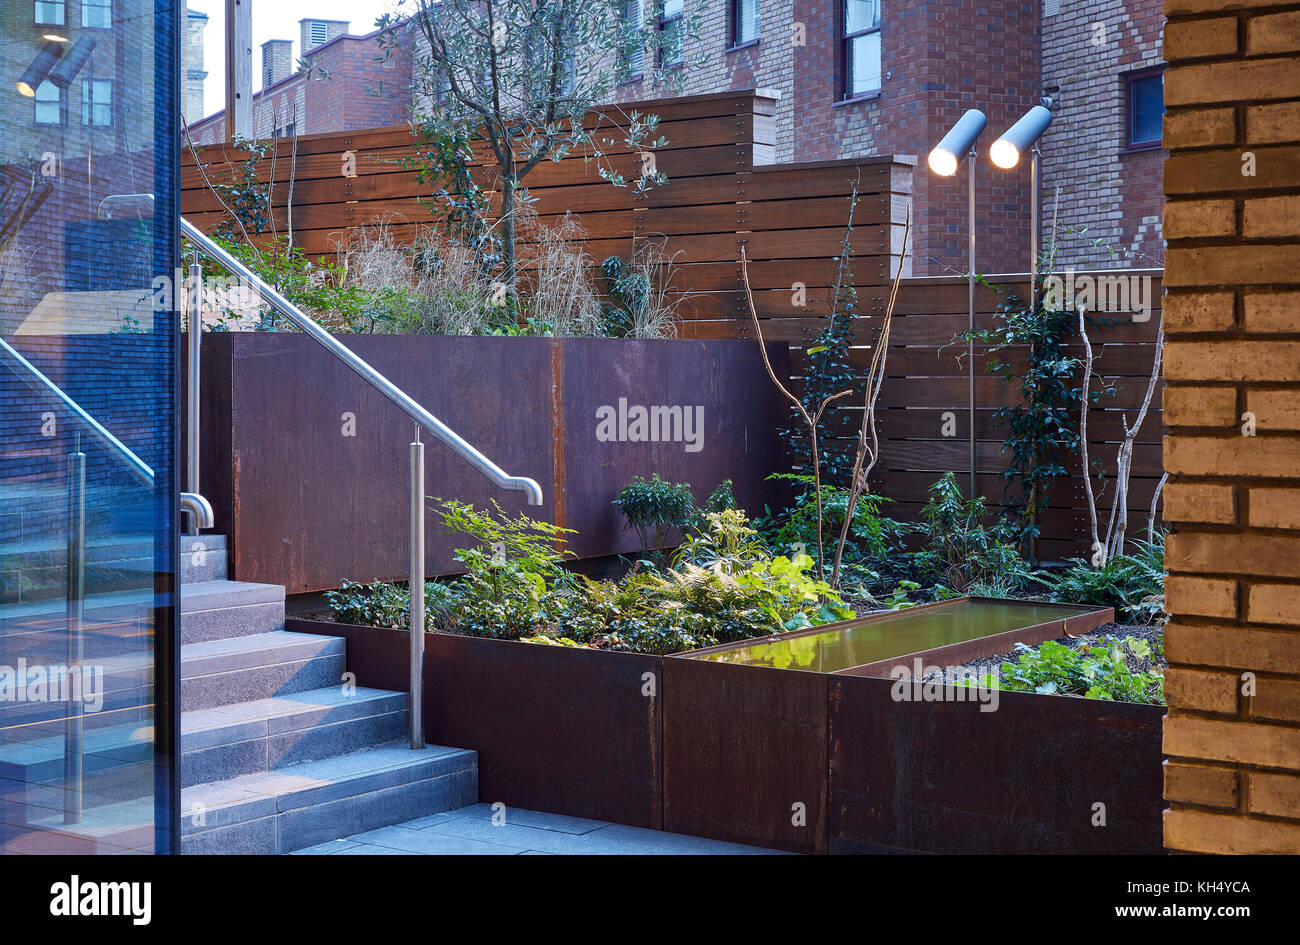 landscaped garden with outdoor lighting and raised metal garden beds